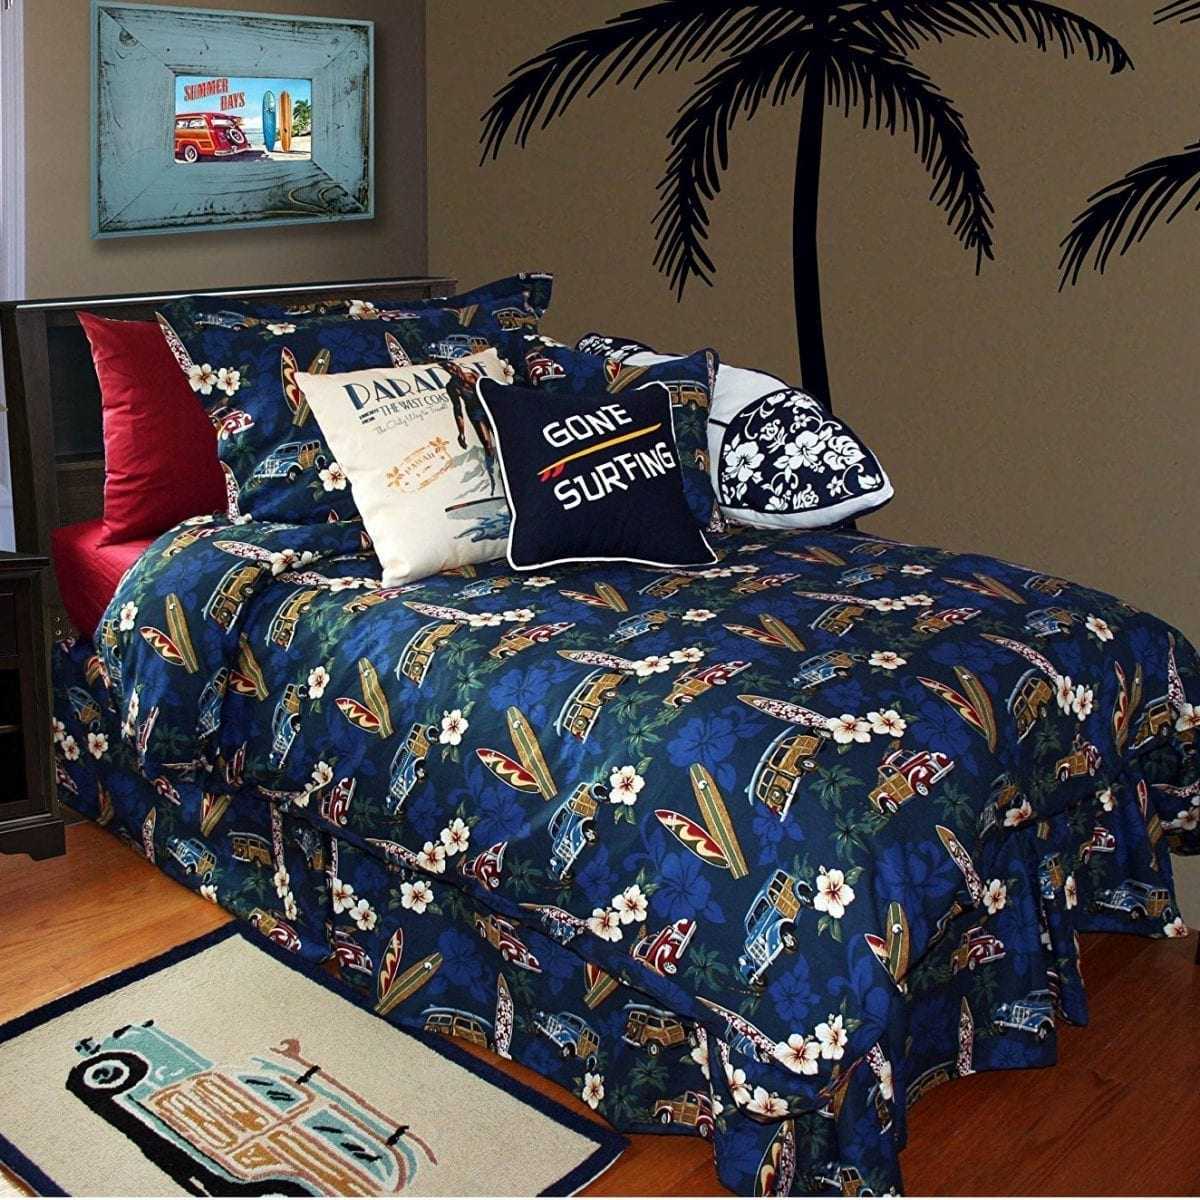 surf-bedding-set Coastal Bedding Sets and Beach Bedding Sets